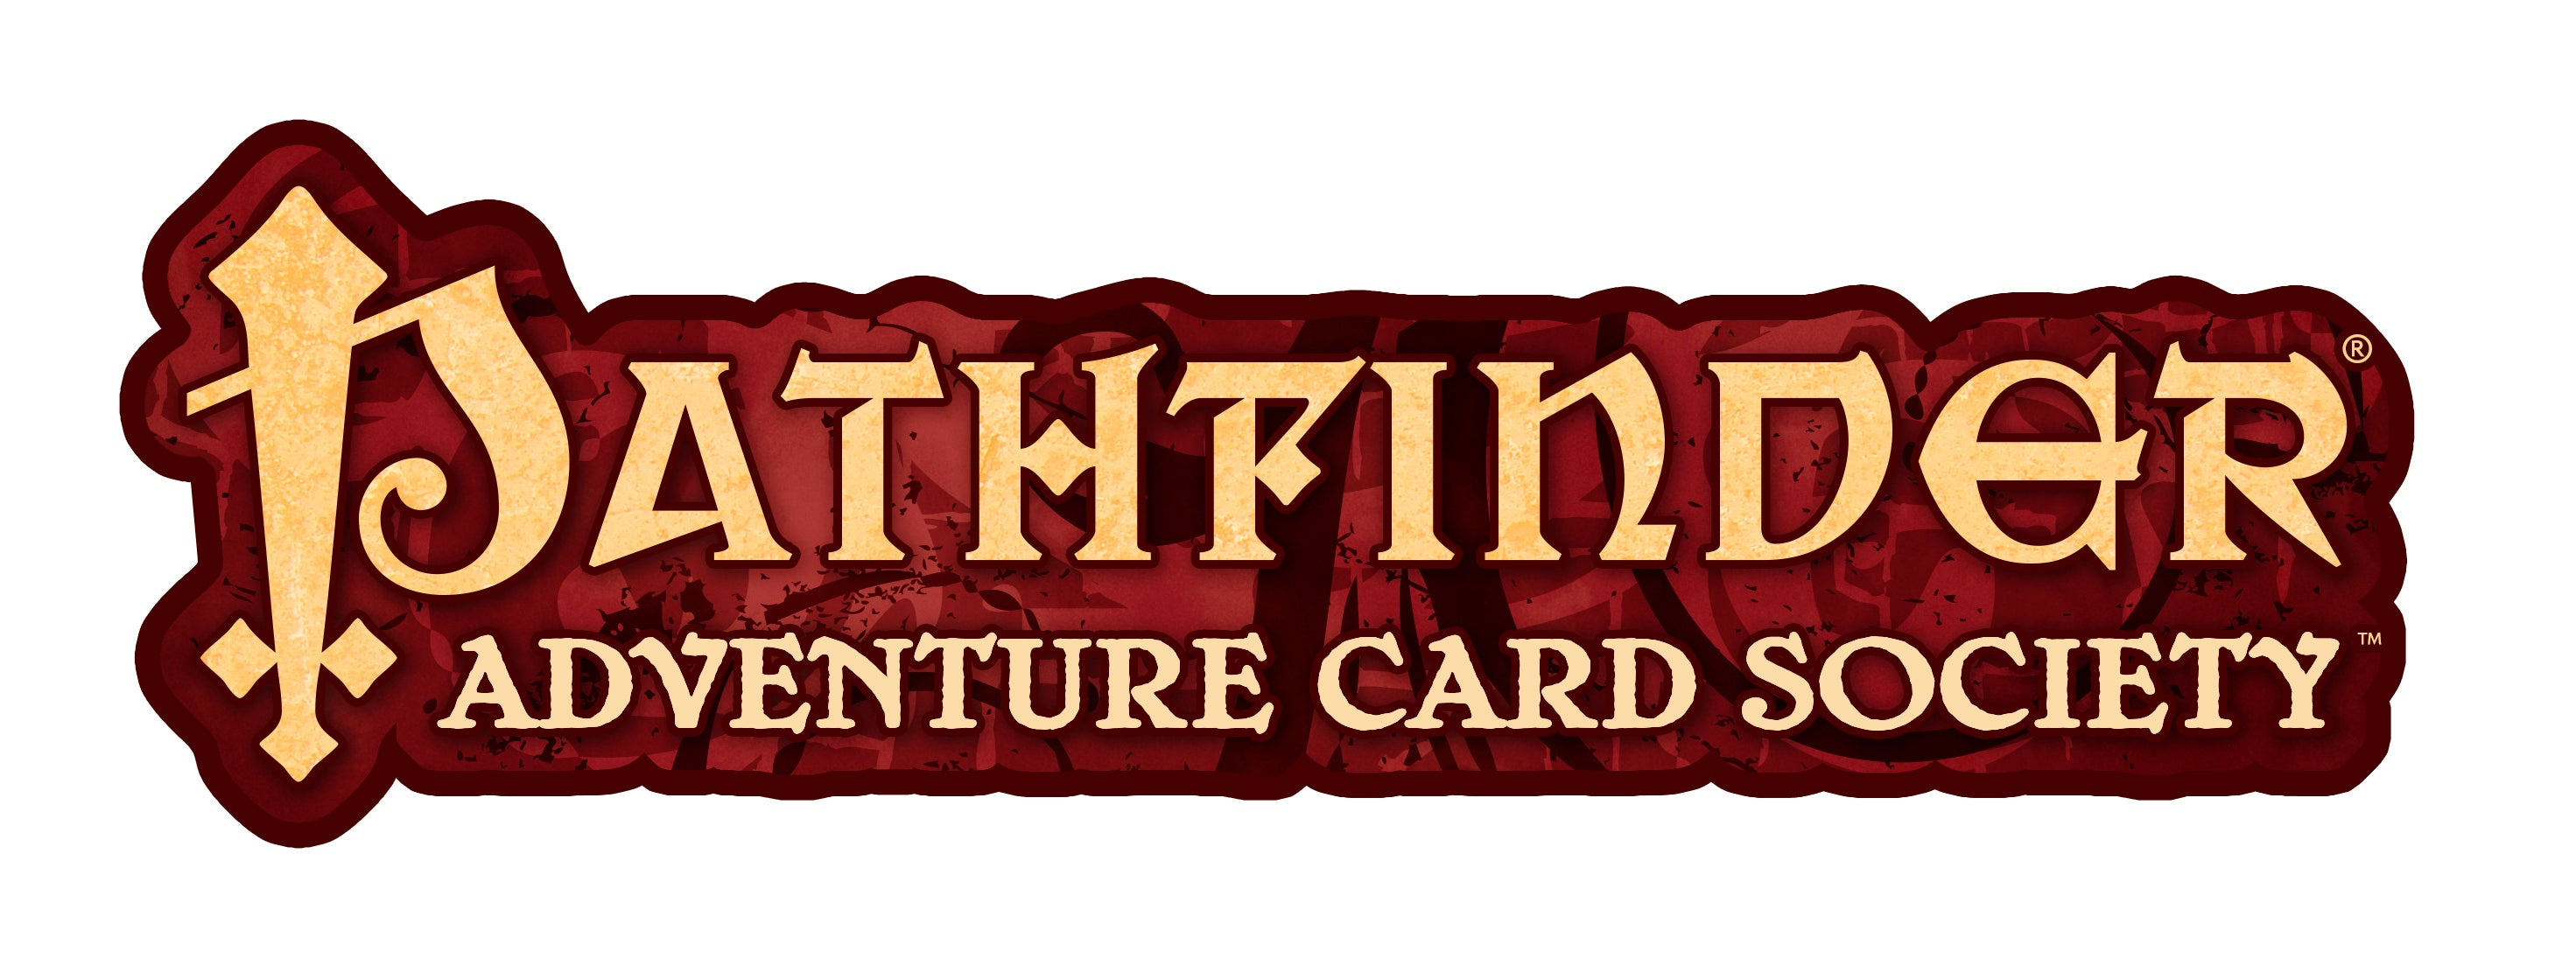 Pathfinder Adventure Card Society logo, Gold text on a red textured background